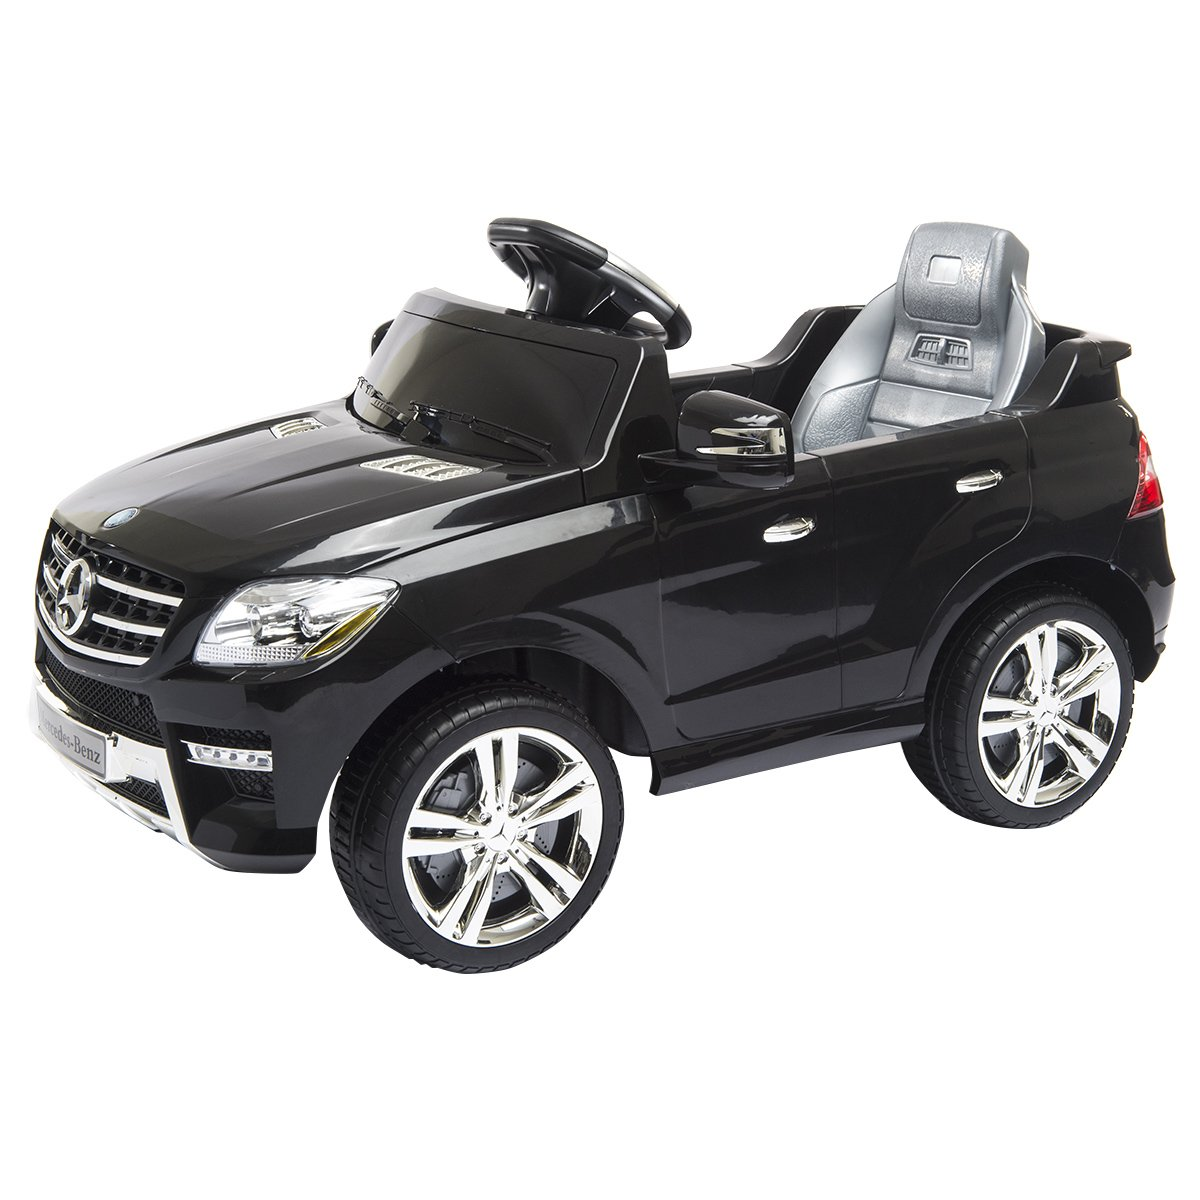 Costzon Mercedes Benz ML350 6V Ride On Car Electric Kids Car with Parental Remote Control, LED Headlights, Horn, MP3 Input, Black by Costzon